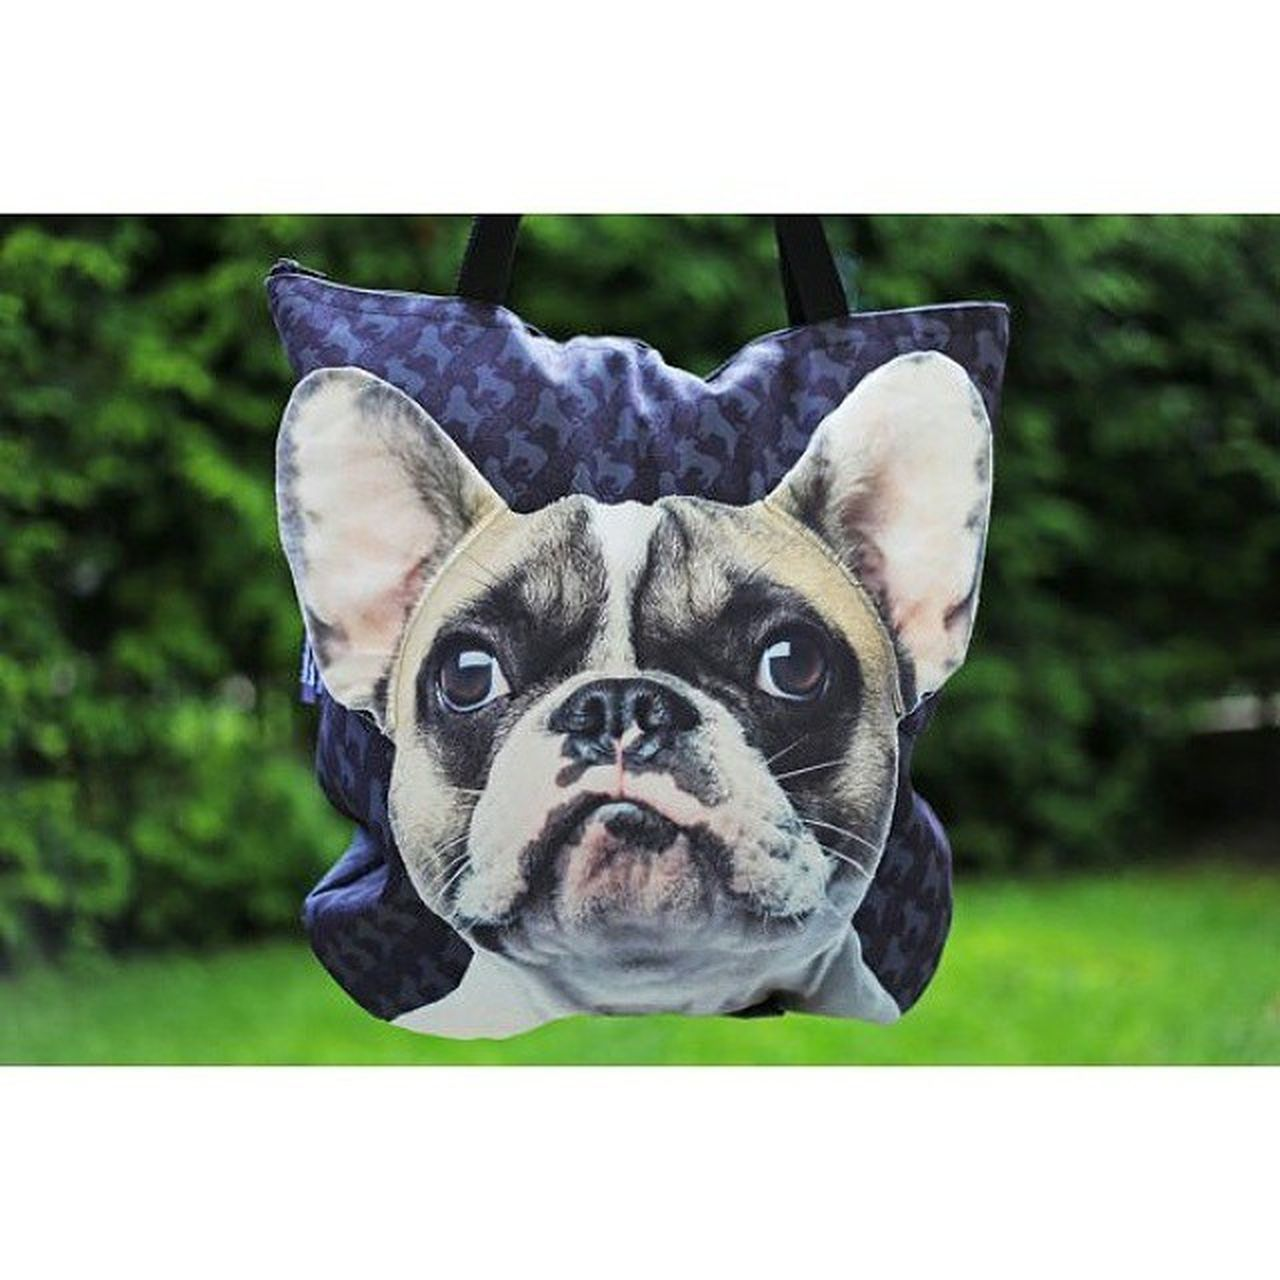 Gtcompany Etsy Shop Only !!! Frenchzone Gtcompany Bullyfun Canon Canon_official Frenchies Bulldogs Portrait Frenchielovers Crazyfrenchielovers Bulldogs Pug Pugs Dogsoninstagram Doggy Gonzothunder Bag Swag 3dbag